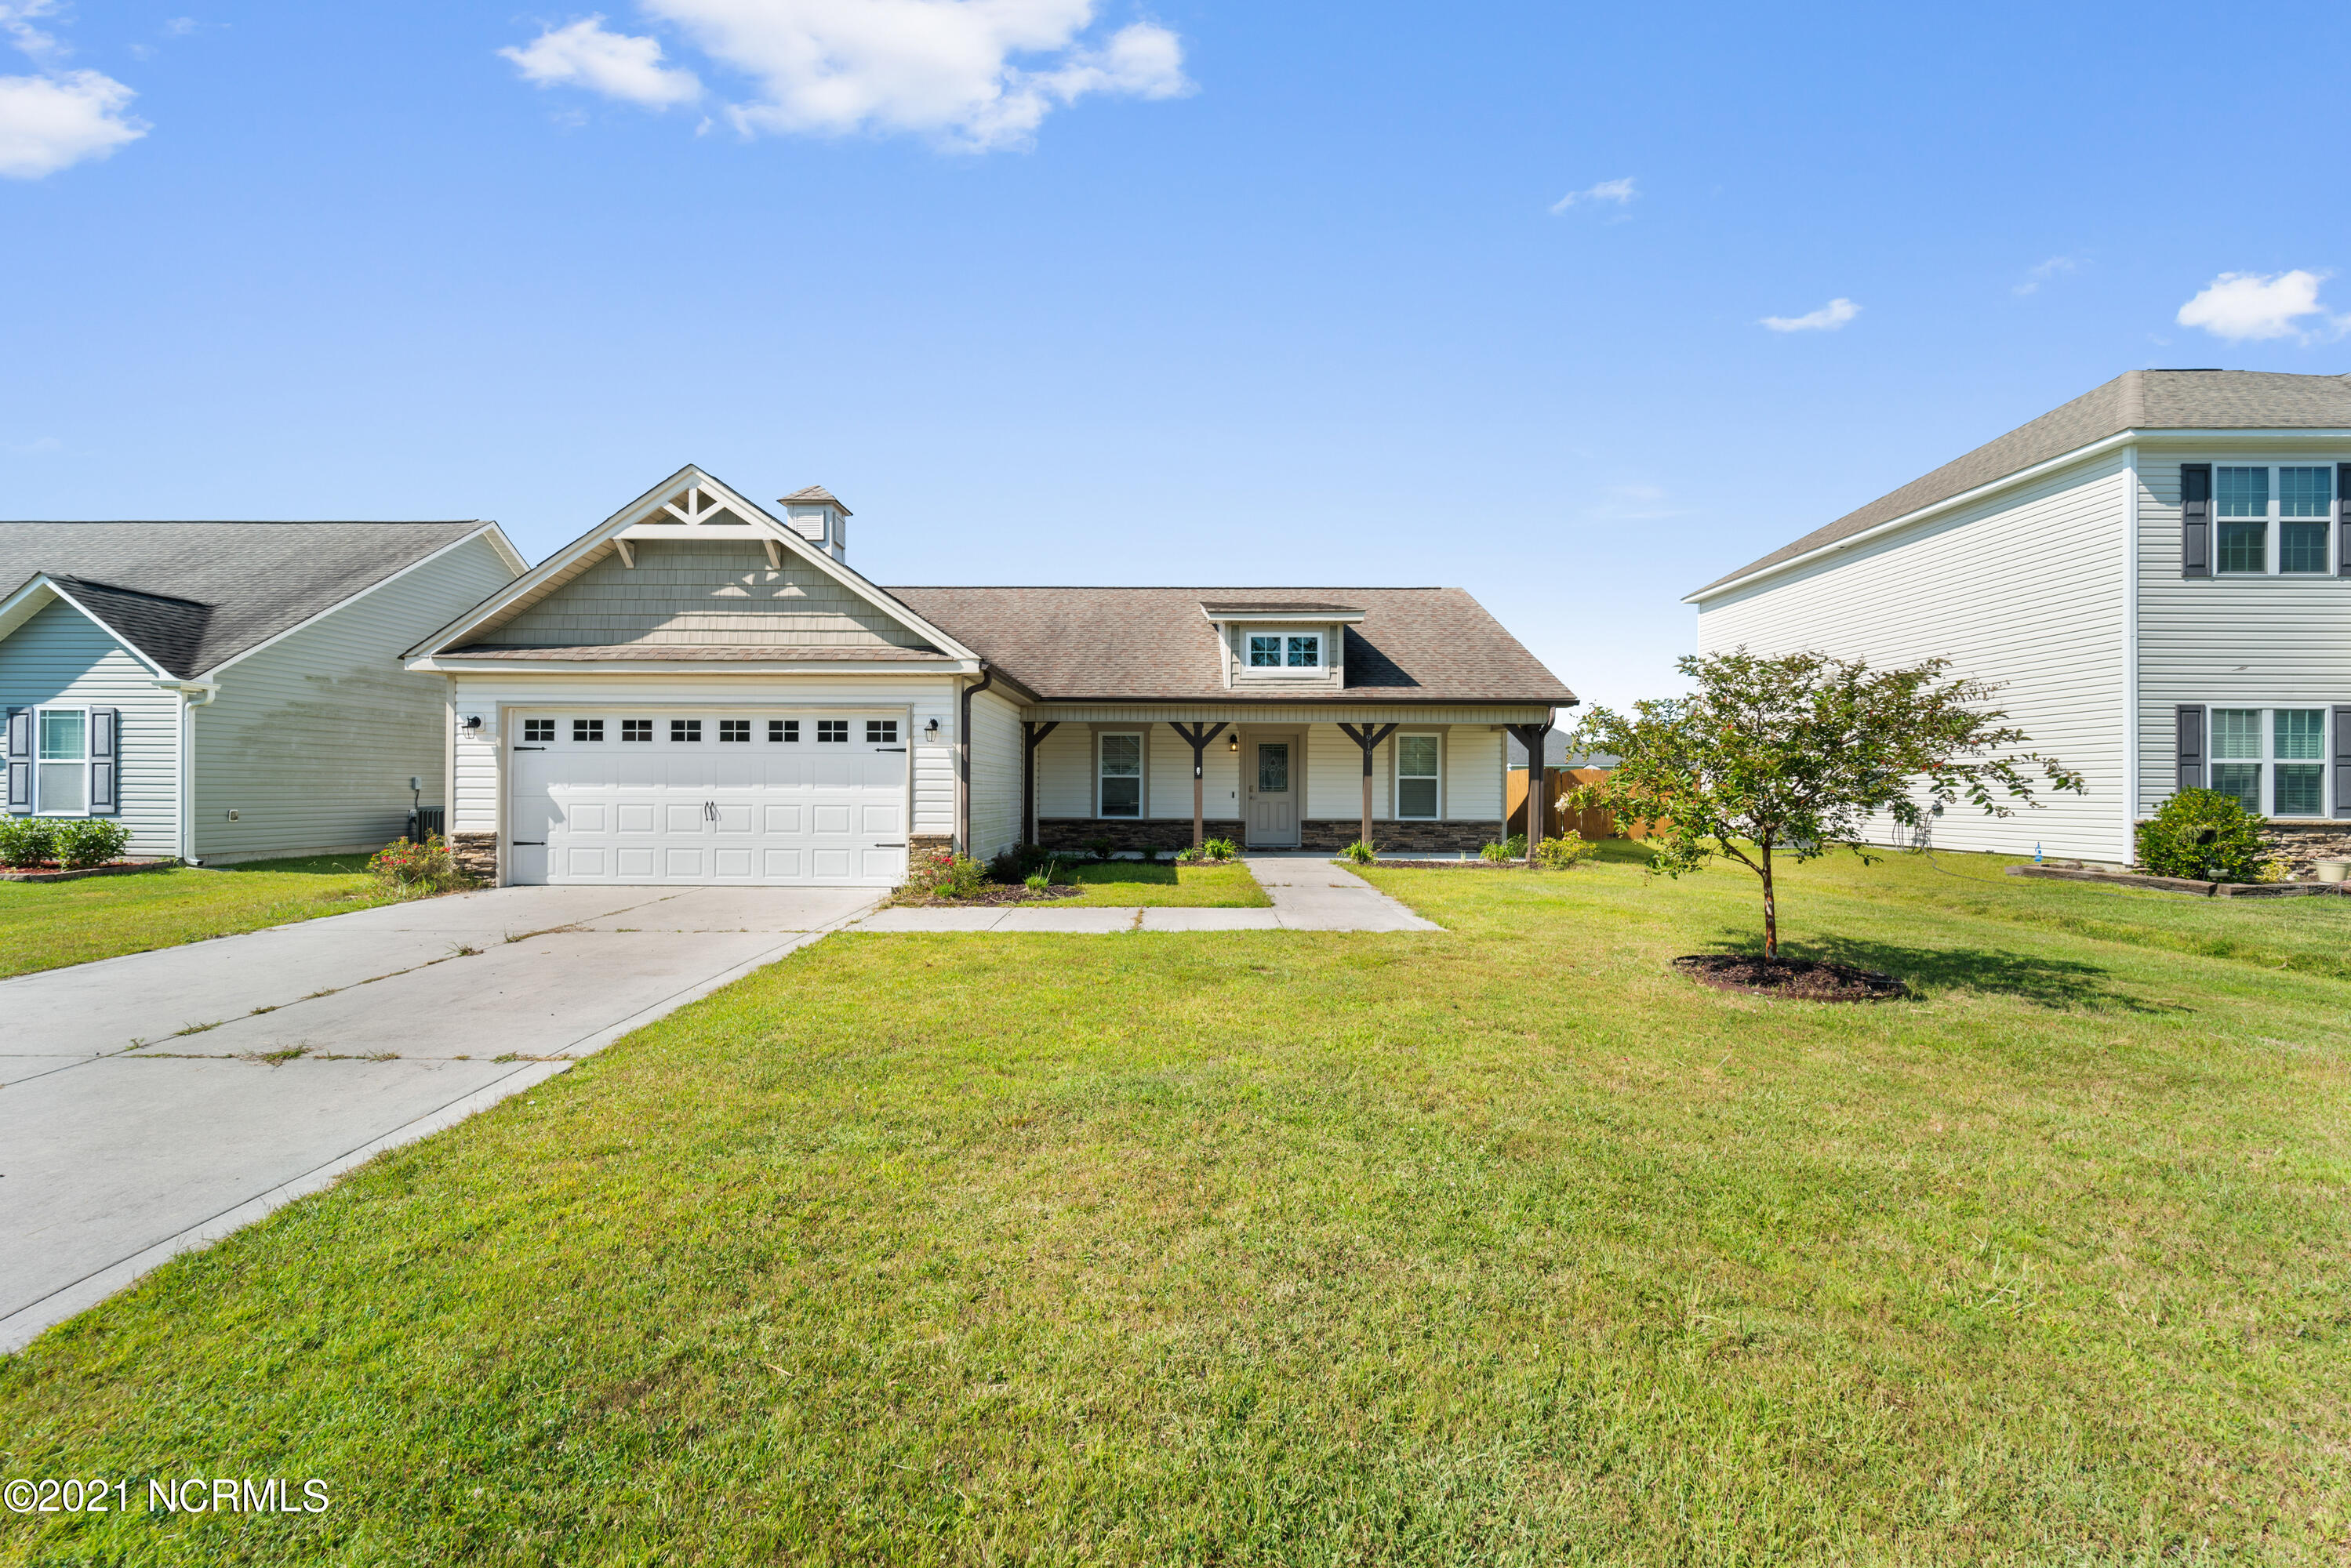 Come view this well maintained 3 Bedroom 2 Bath home in Jacksonville's most desired neighborhood, Carolina Plantations.  The home features an open split bedroom floor plan.  Please call for your showing today!